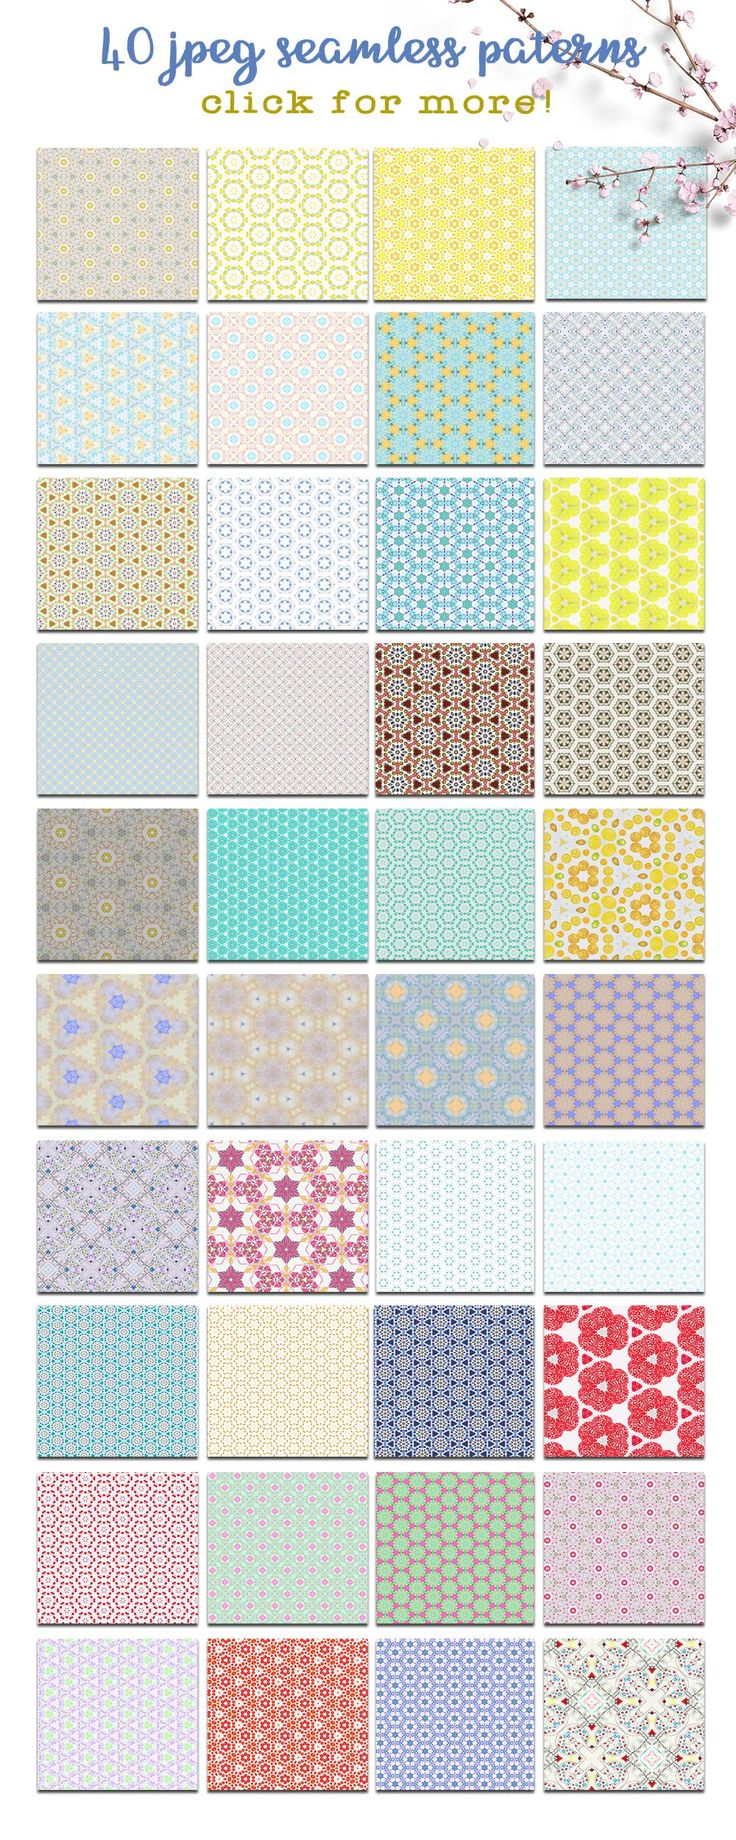 **40 Handcrafted Vintage Seamless Patterns - PROMO Price 5$!** I am glad to present you my new product! All the patterns are made from my hand painted watercolor artworks and my hand drawn doodles. The collection has 40 seamless patterns - jpeg. files and 12 seamless PSD patterns that you can apply with 1 click and then customize as you wish.